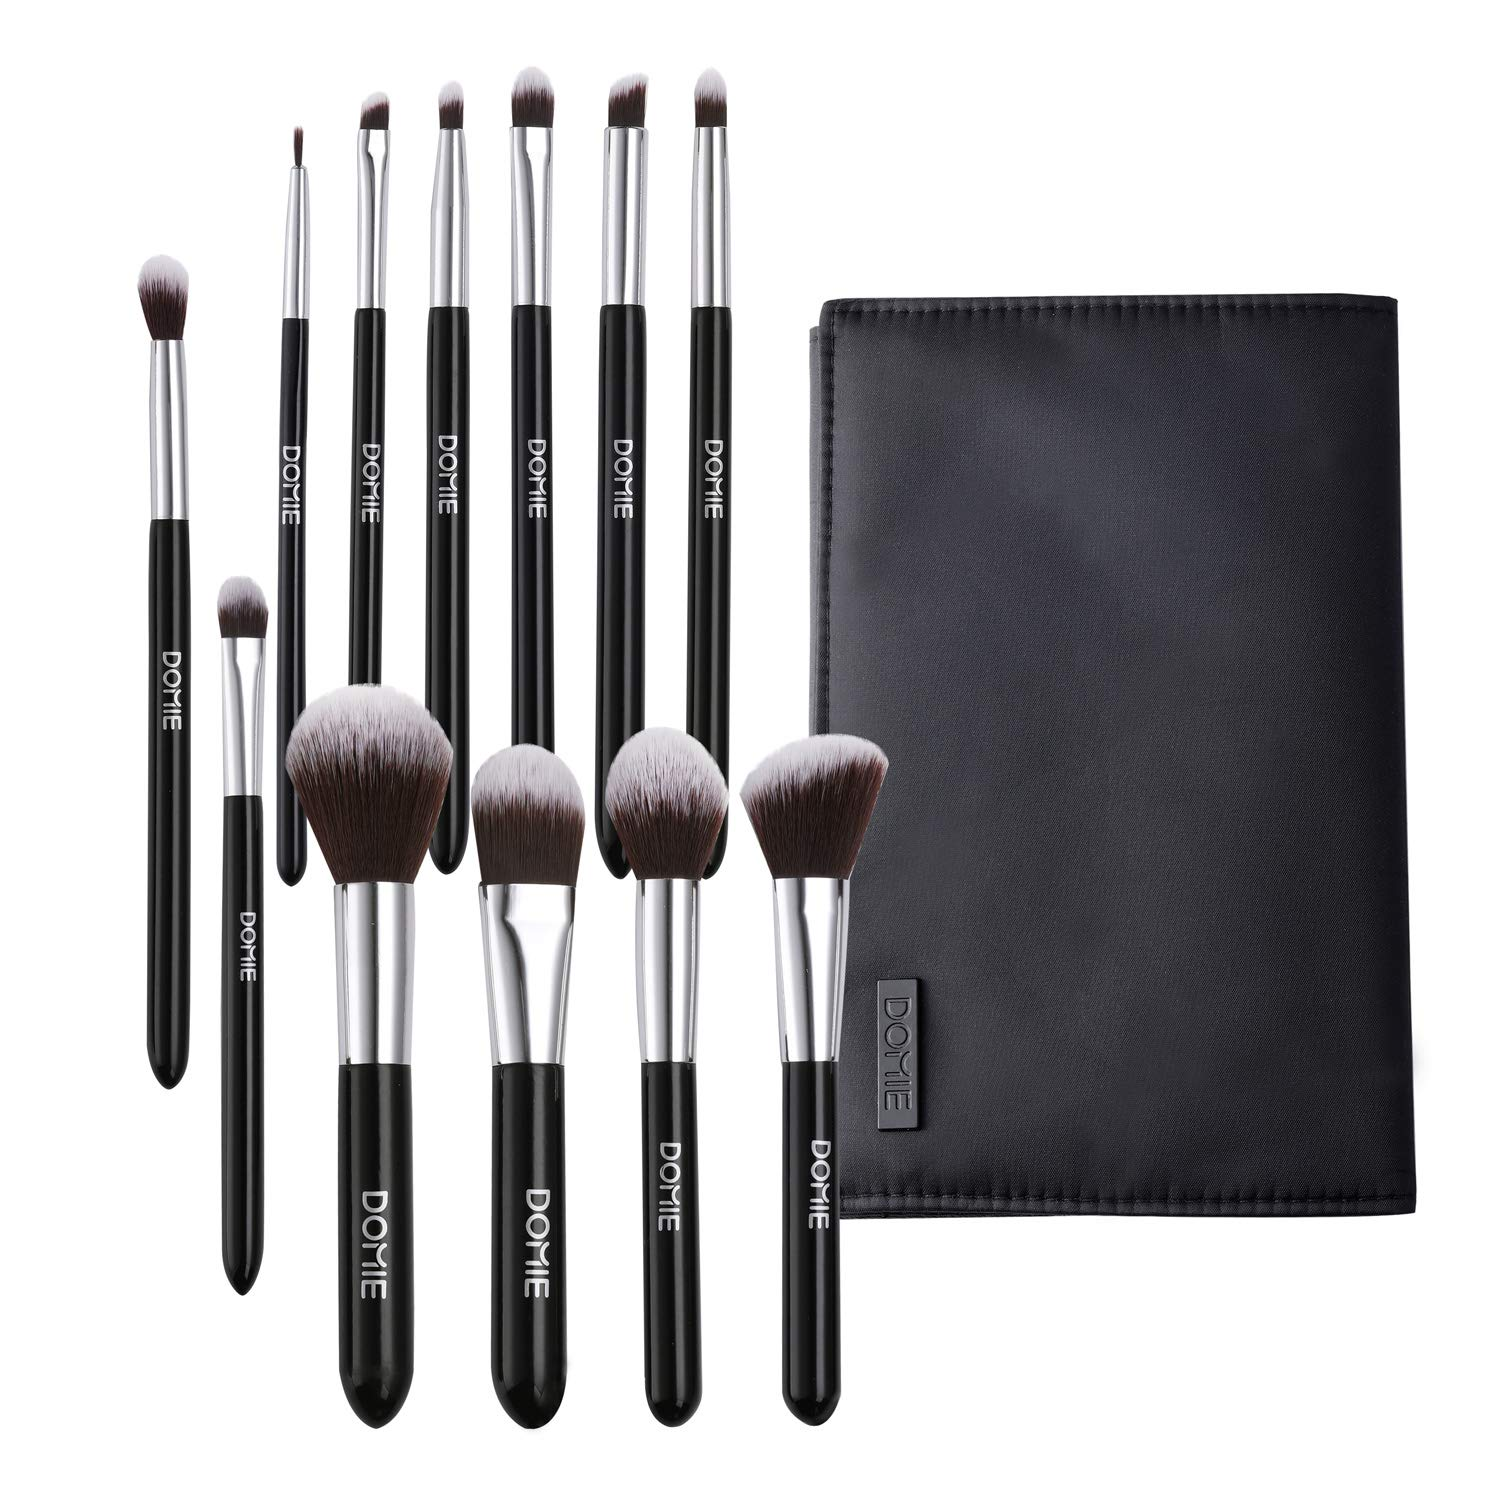 Makeup Brush Set with Travel Bag, Domie 12 Premium Synthetic Brushes for Foundation, Concealer, Eye Shadow, Blusher, Powder, and More